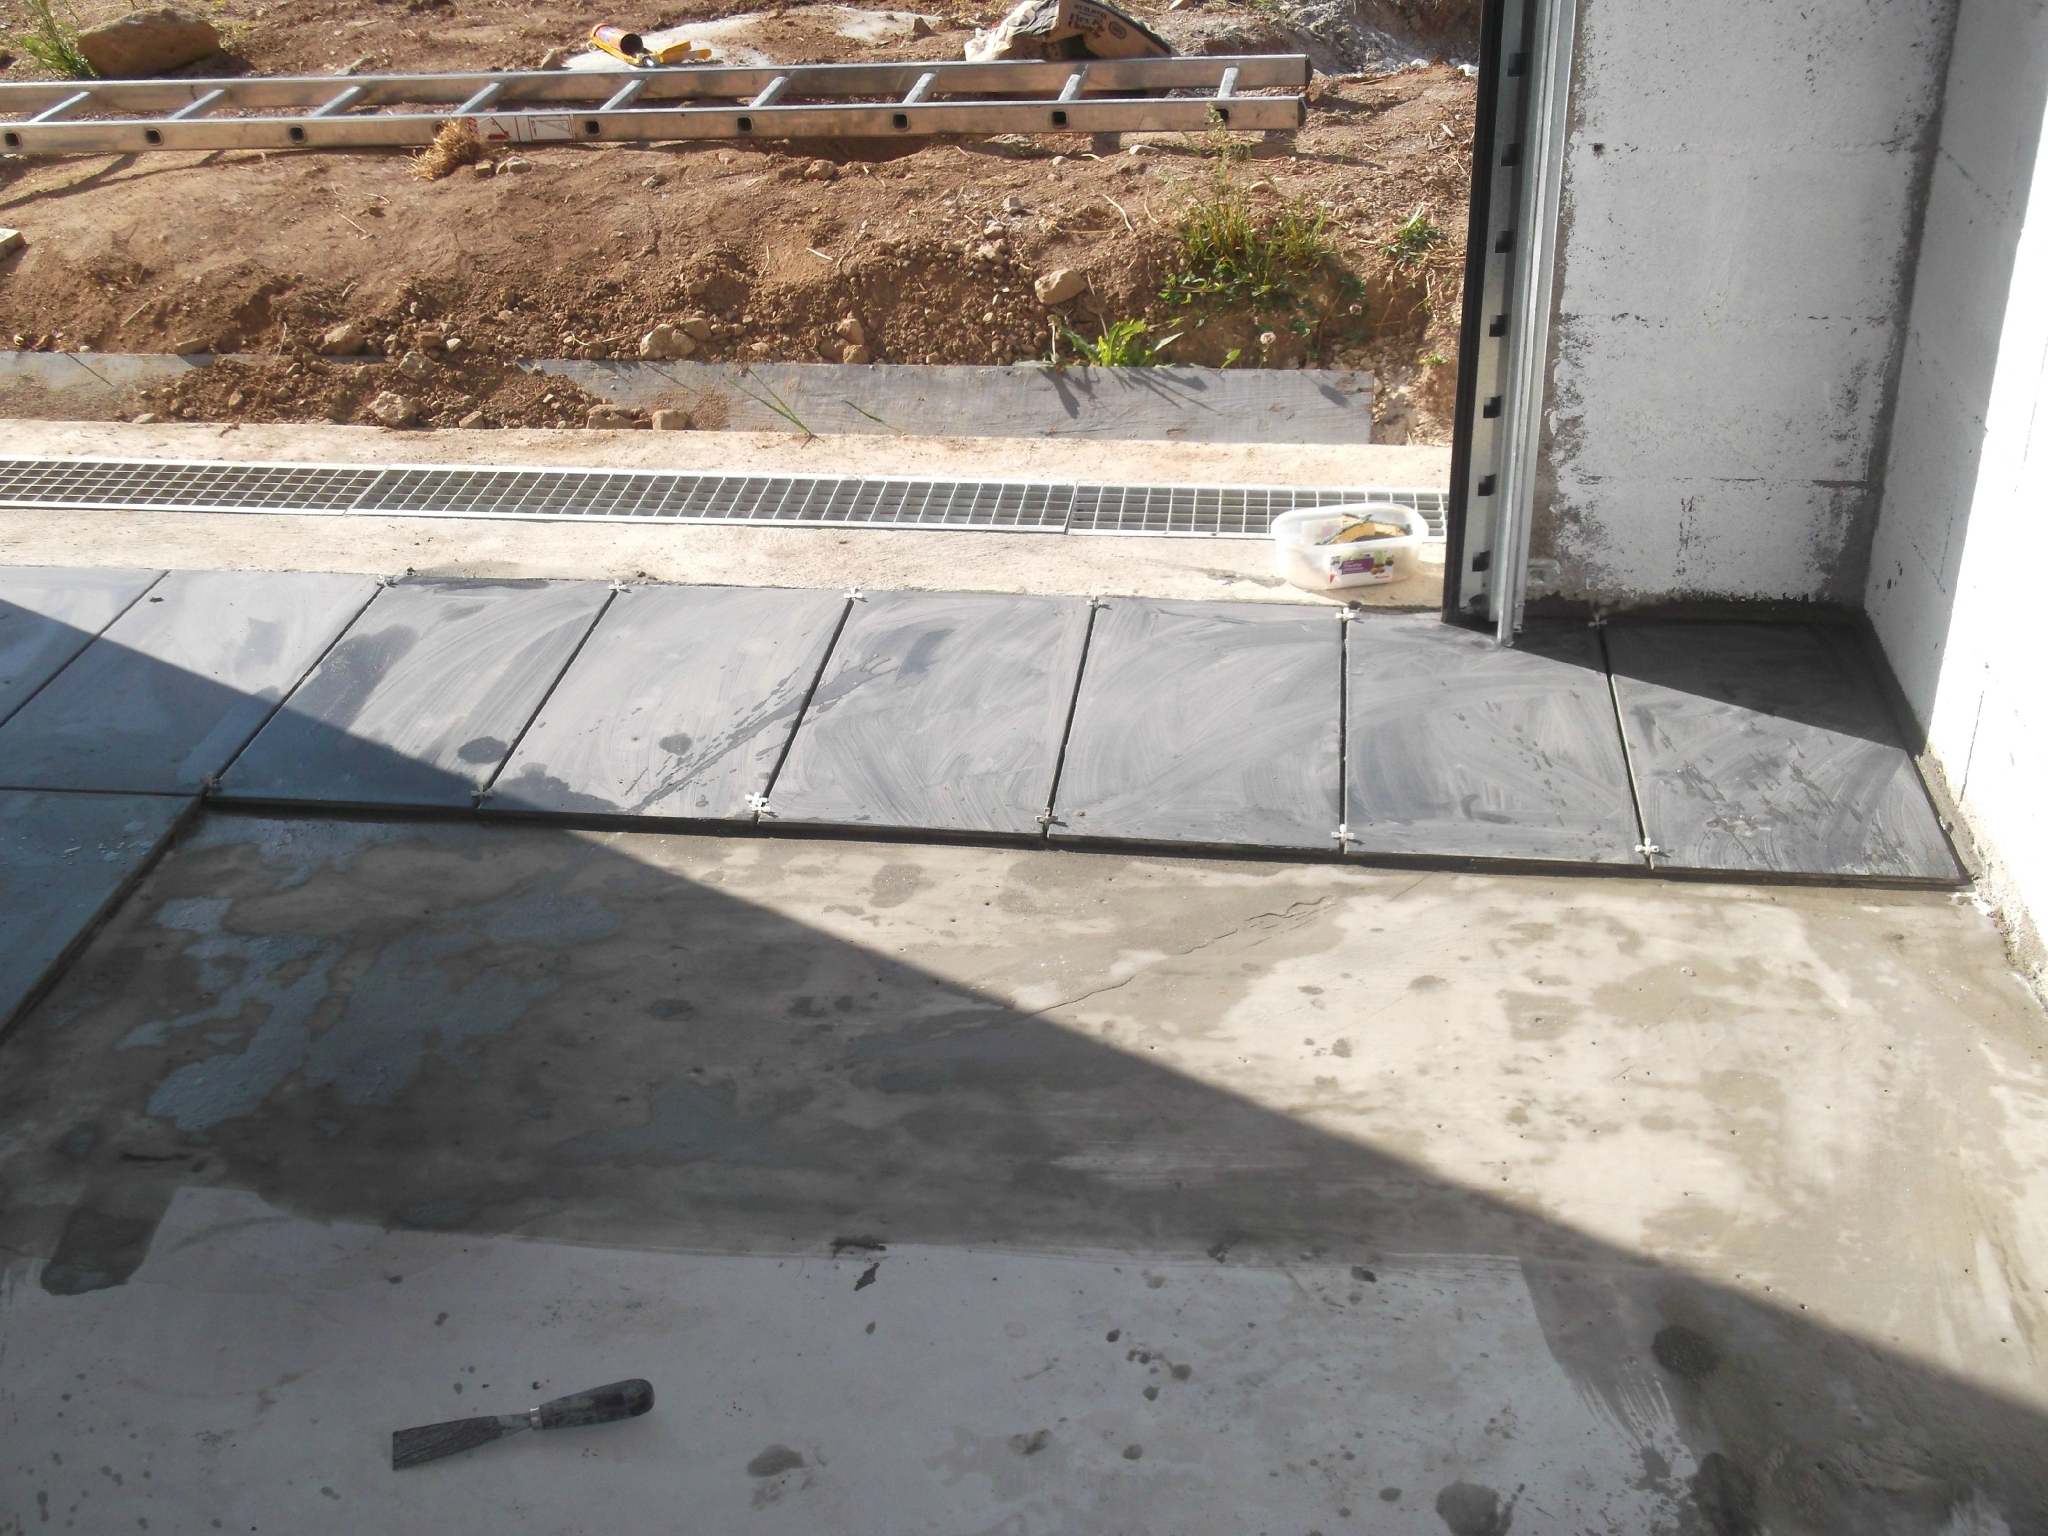 Carrelage du garage construction d une extension